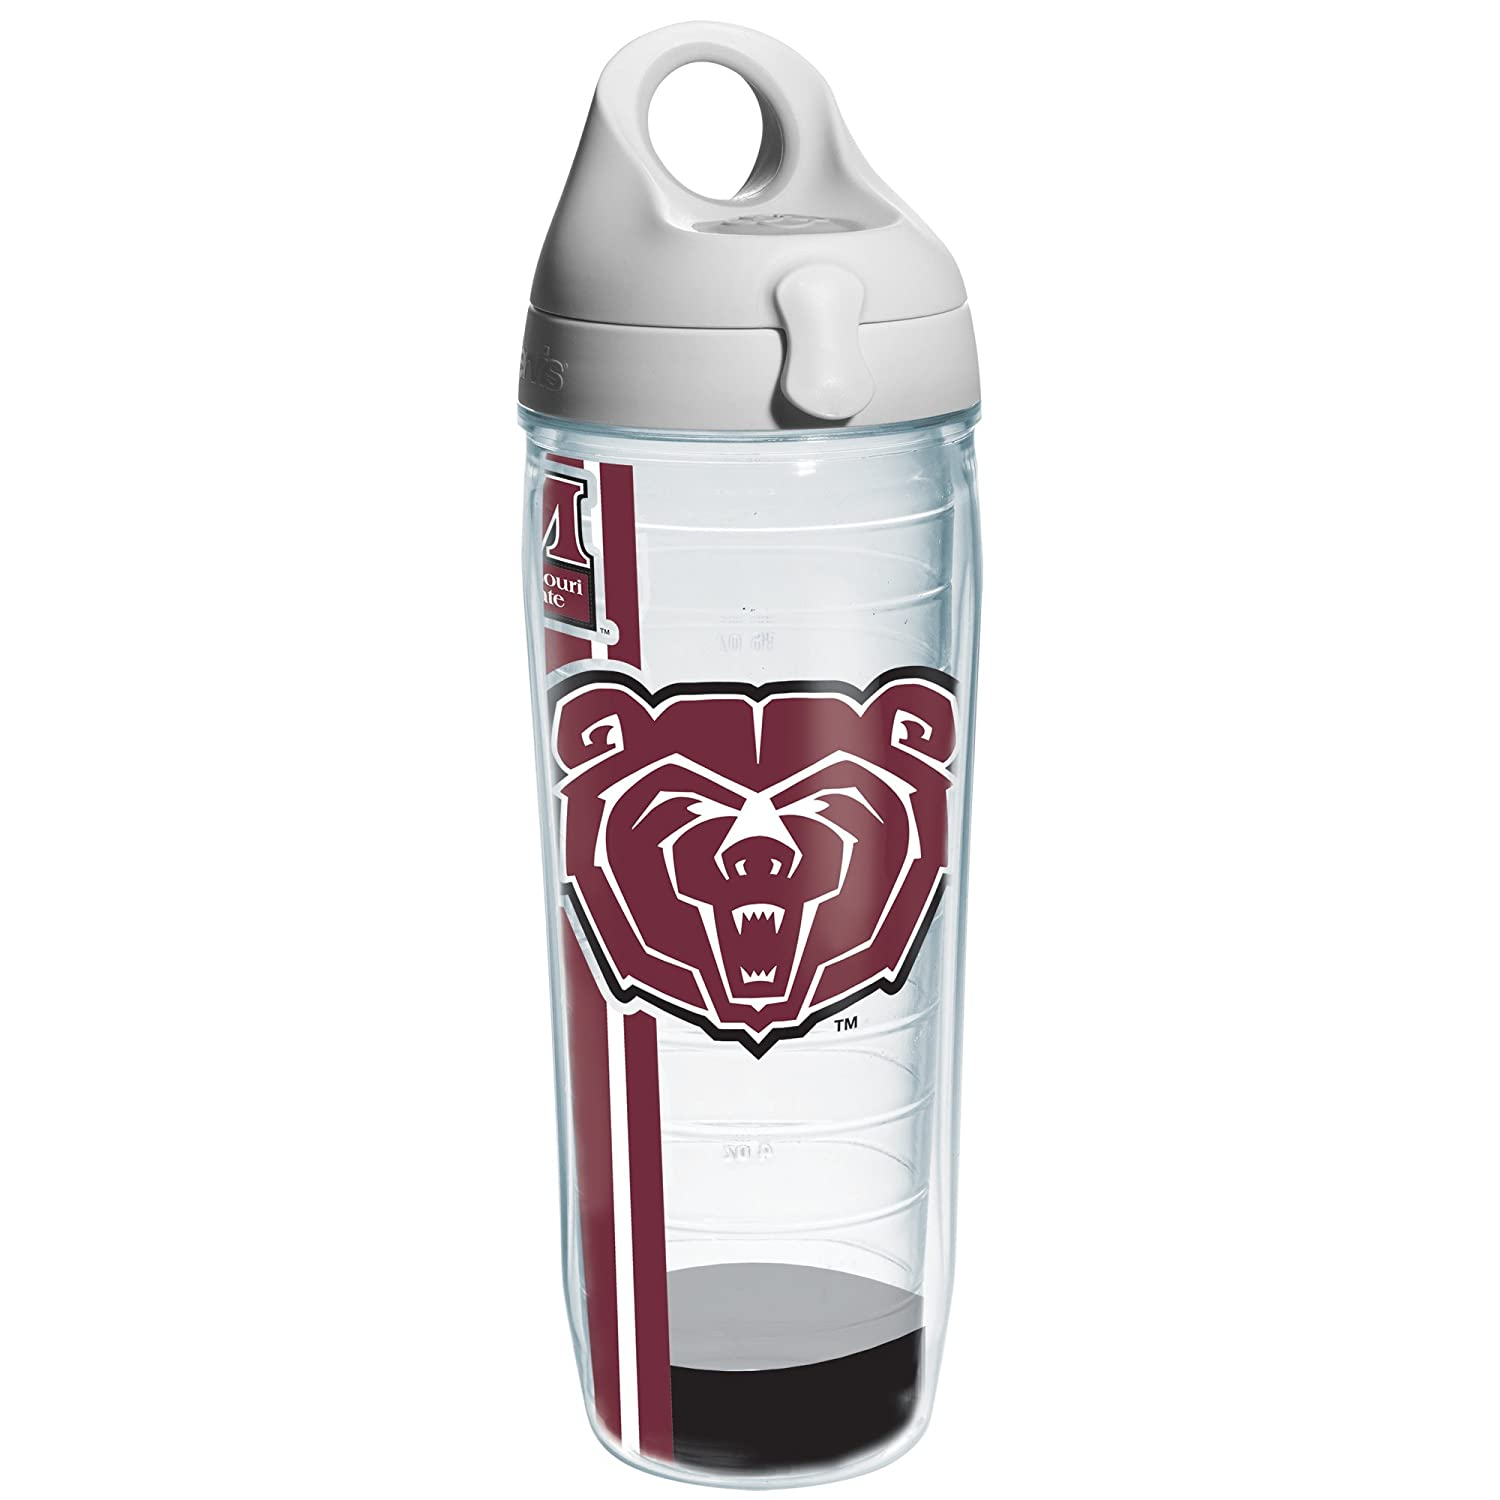 Tervis 1205093 Missouri State University Colossal Wrap Individual Water Bottle with grau lid, 24 oz, Clear by Tervis